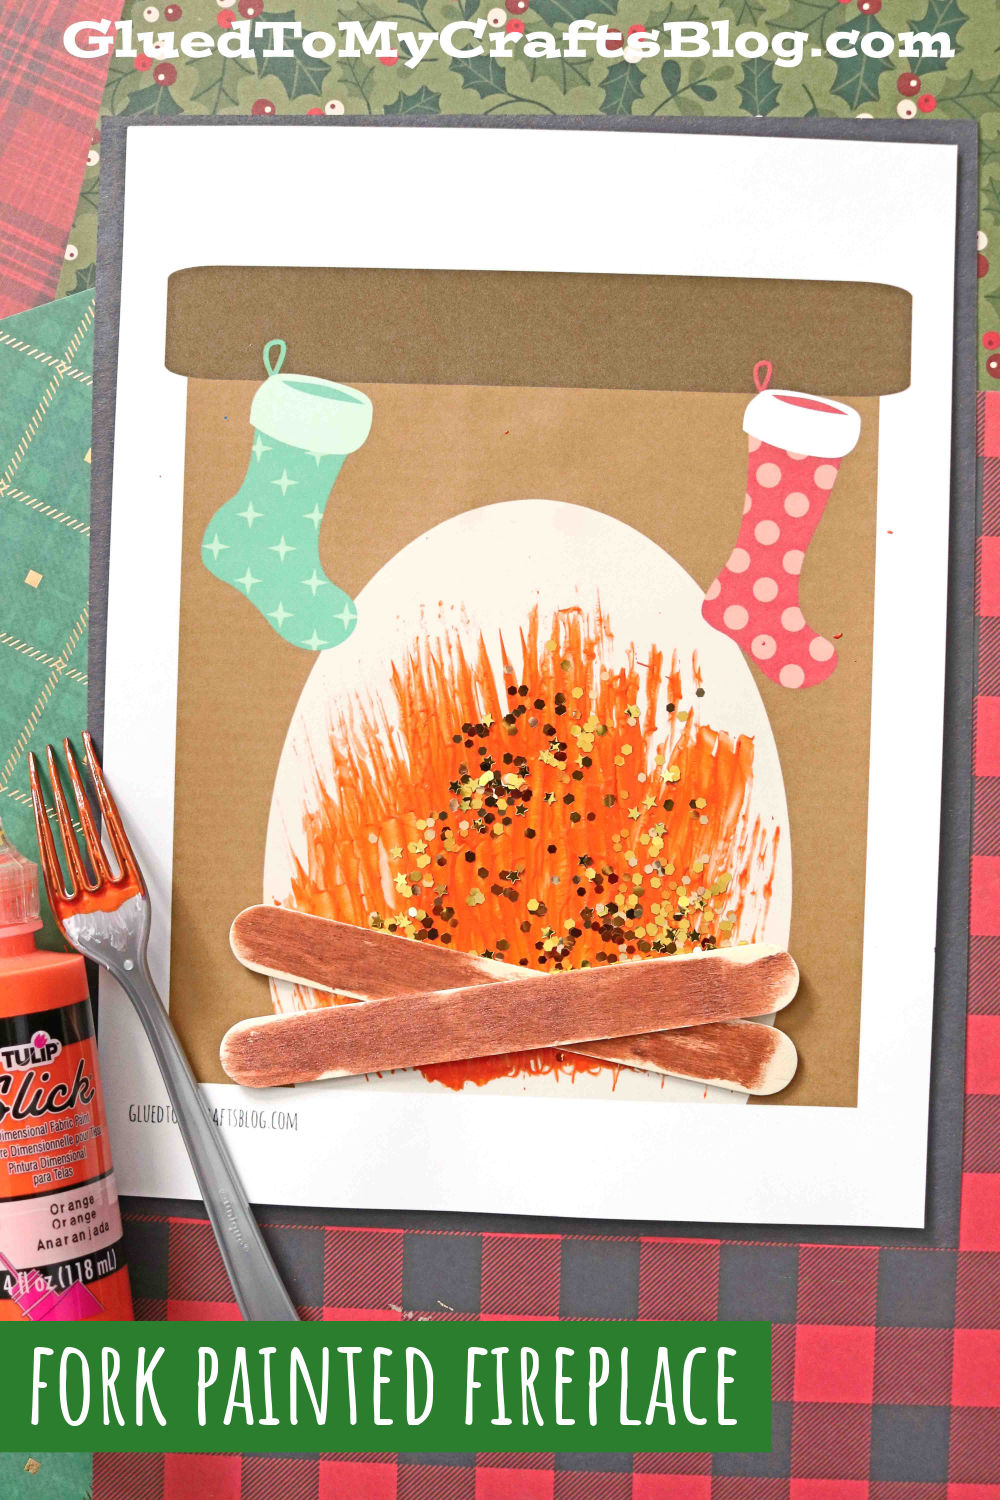 Fork Painted Fireplace - Christmas Craft Idea For Kids